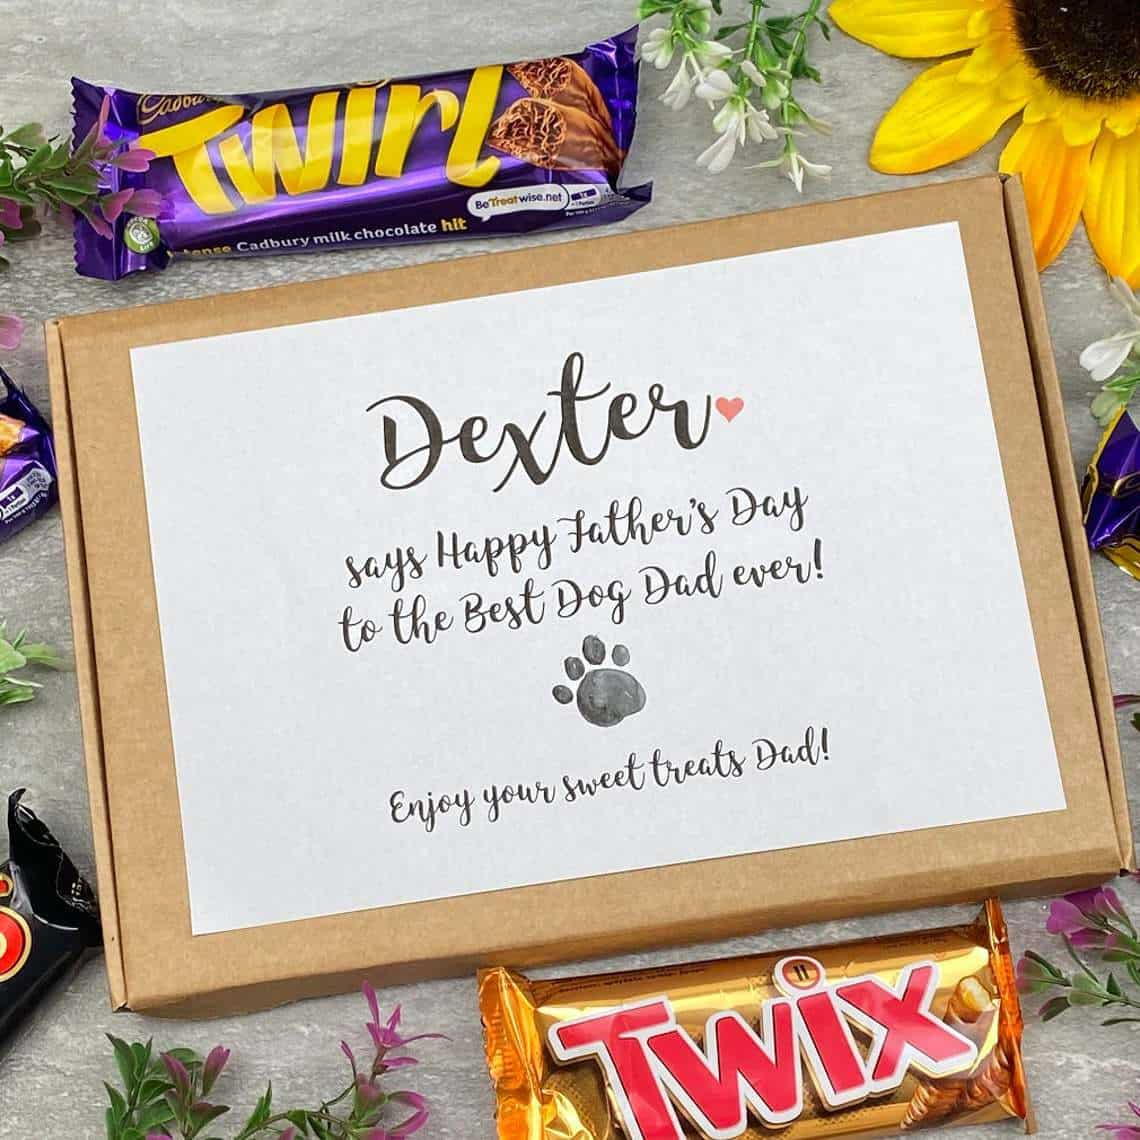 Chocolate Hamper, Father's Day from the dog